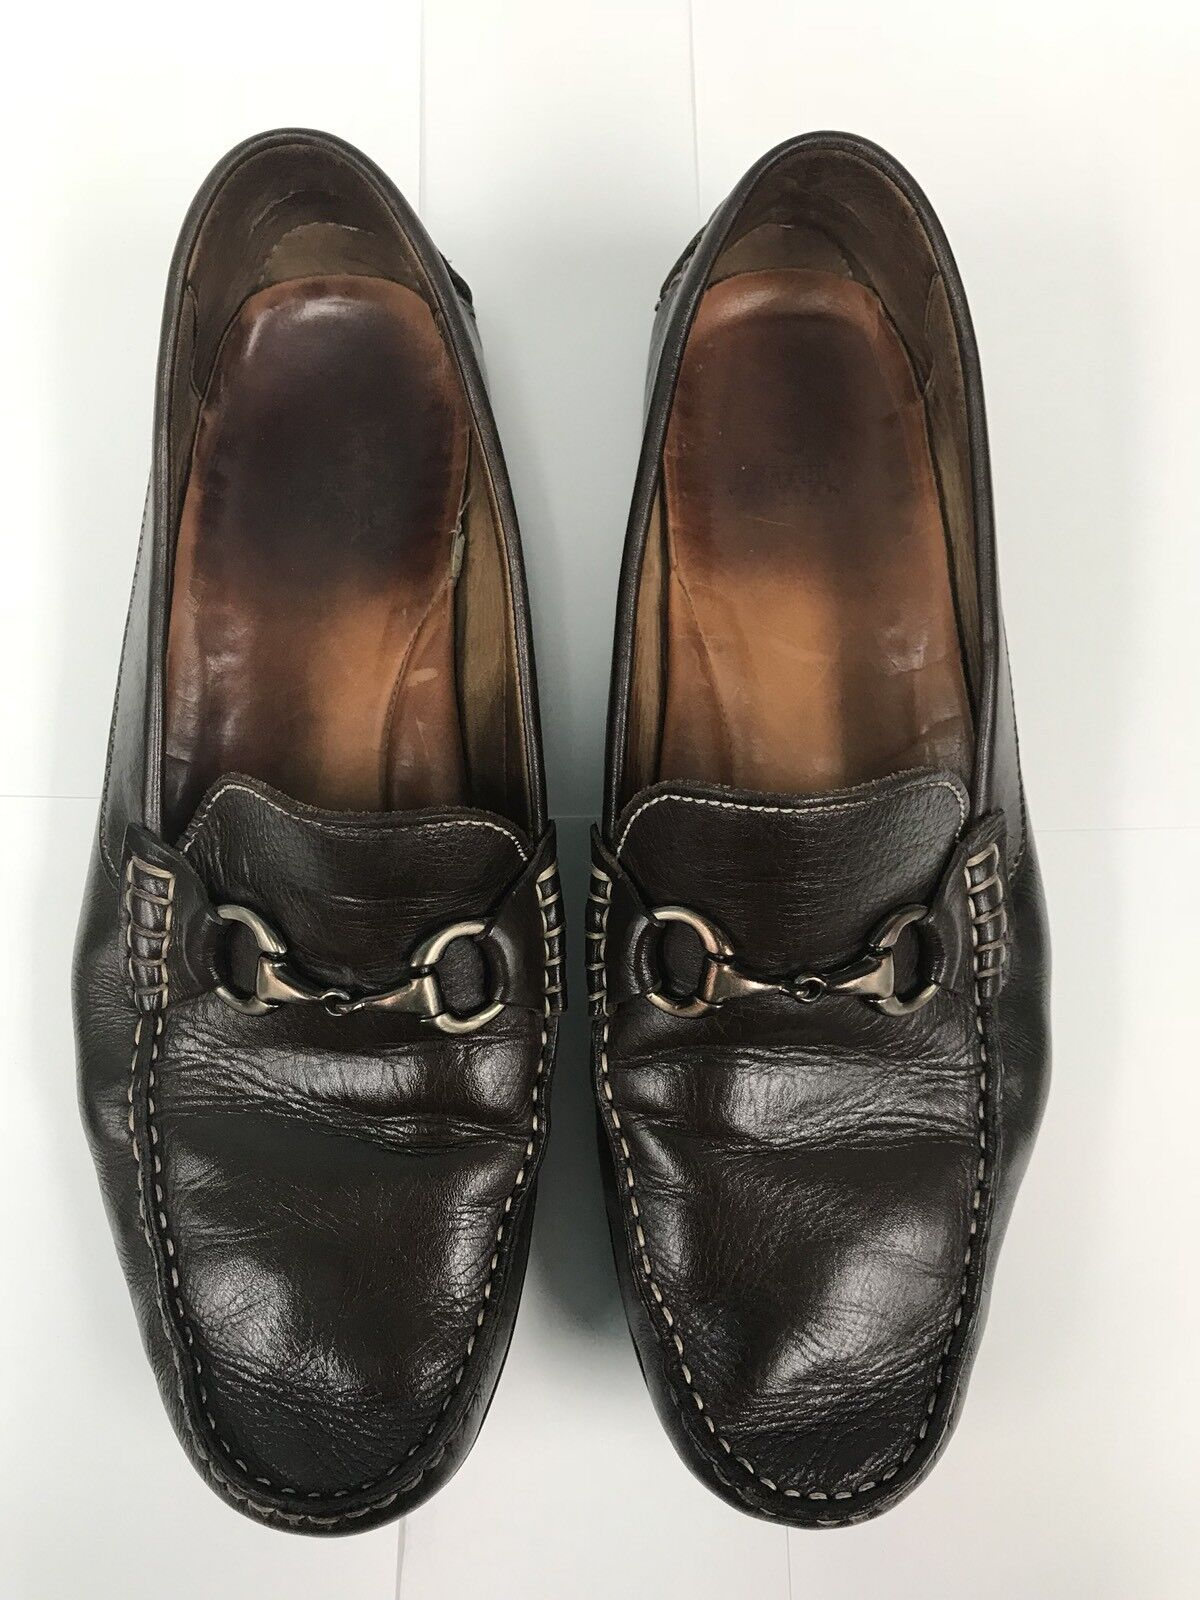 Peter Millar Uomo Driving Mocs Loafer Horsebit Brown Pelle Shoes Size 11.5M